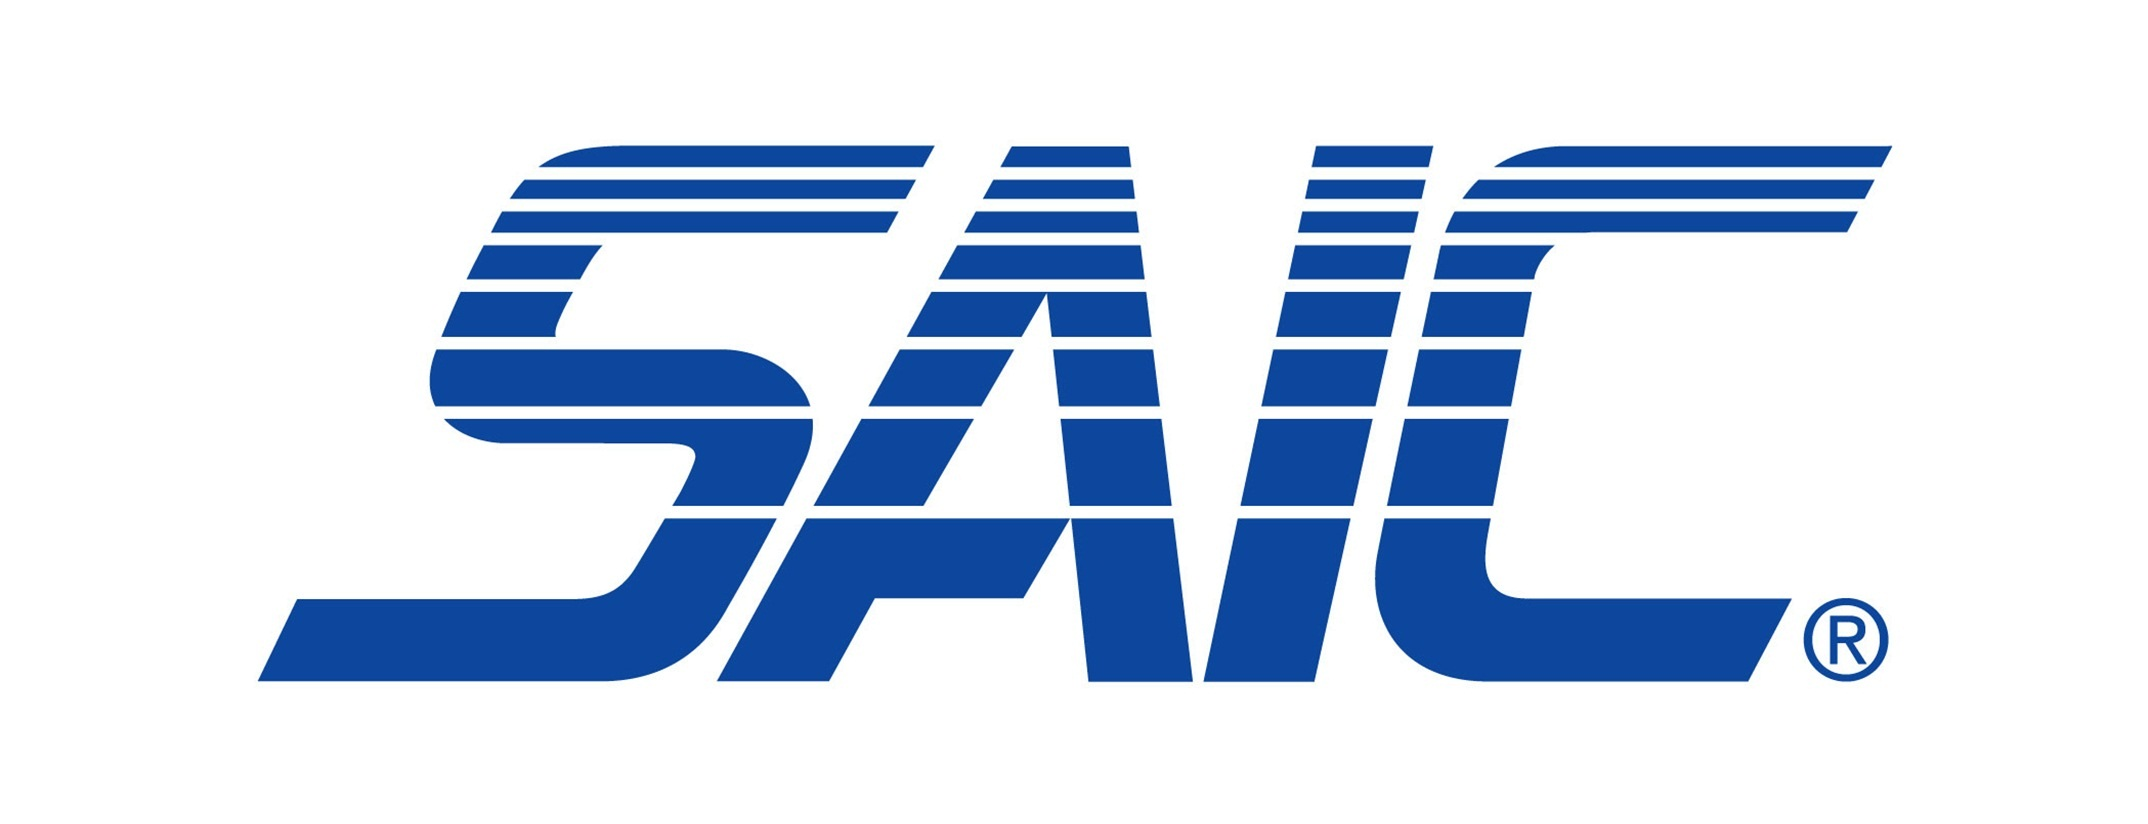 saic-logo-wallpaper.jpg